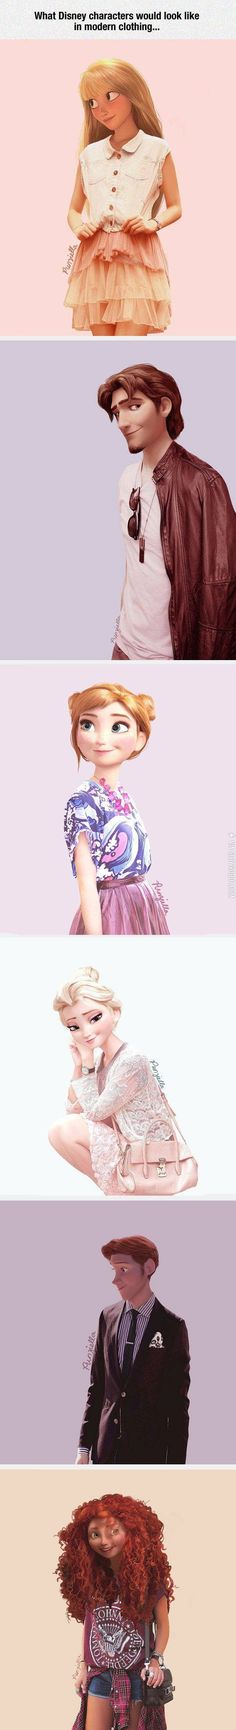 Disney characters in modern clothing.